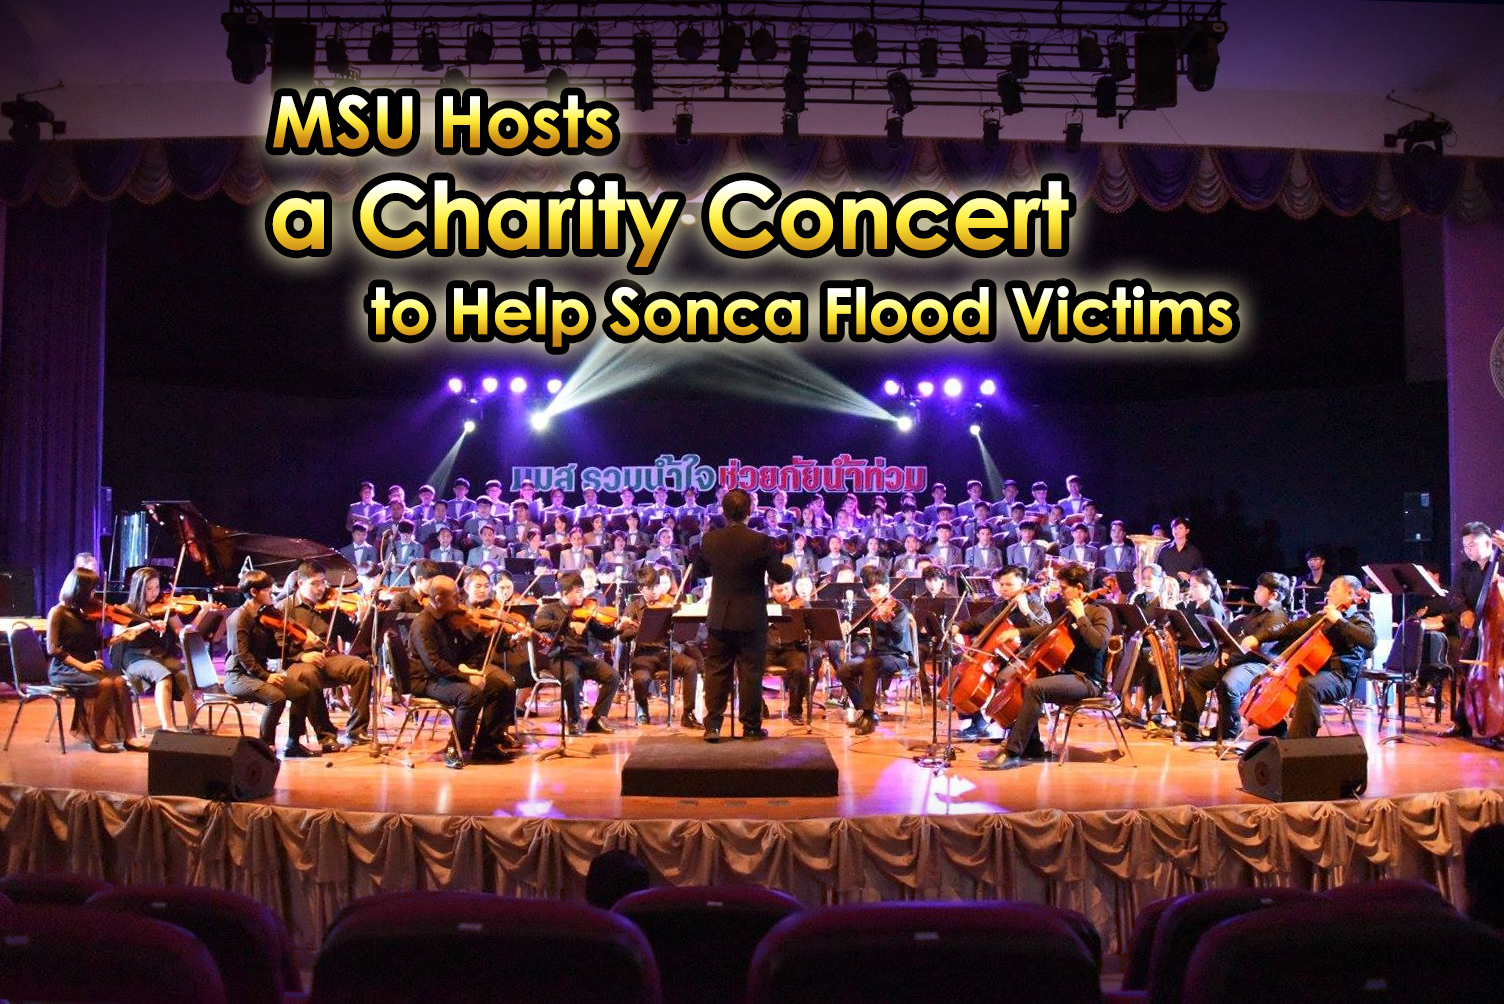 MSU Hosts a Charity Concert to Help Sonca Flood Victims